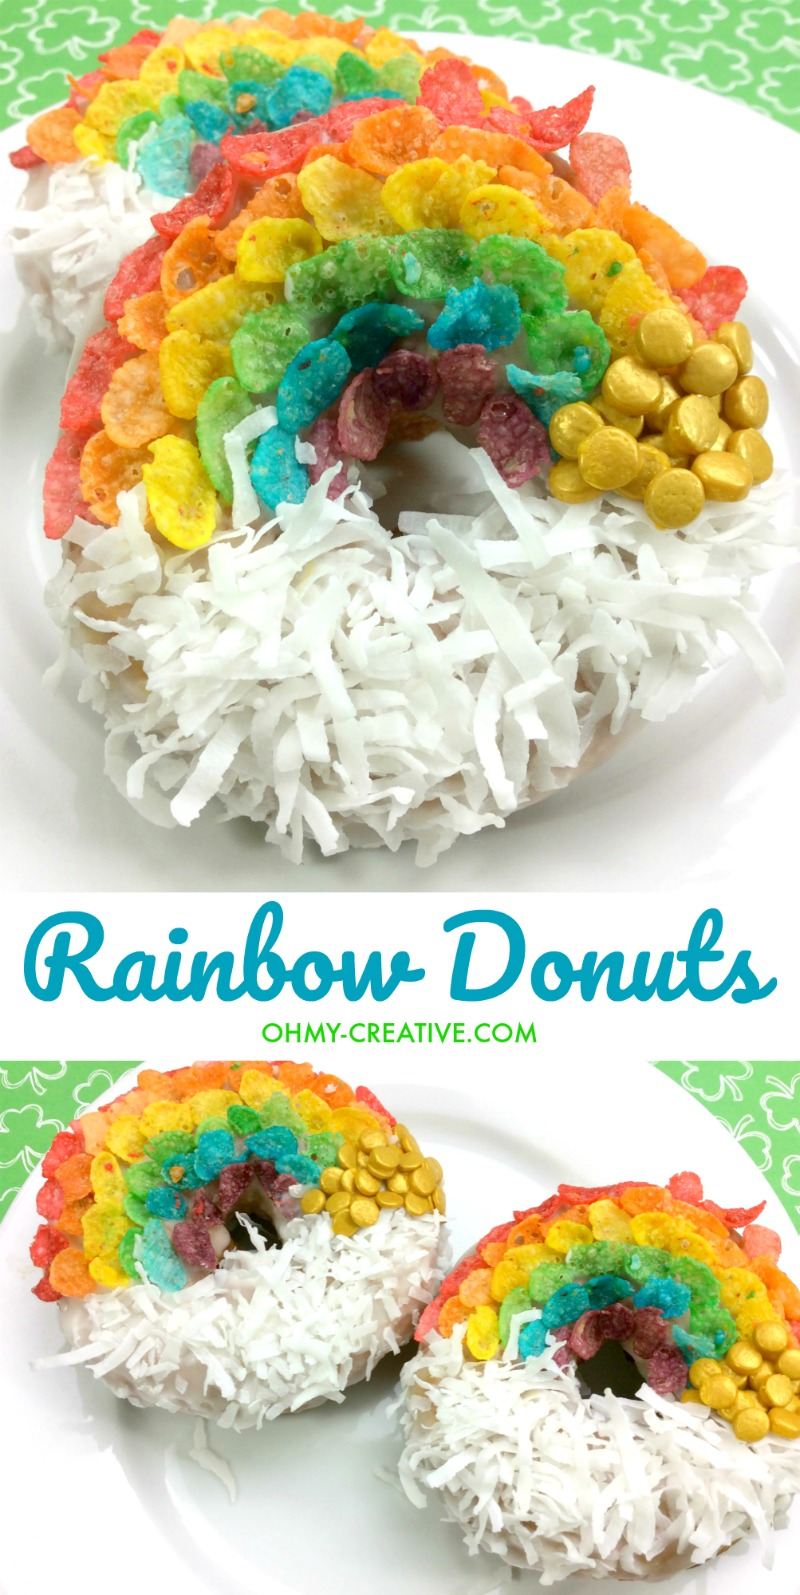 Rainbow Donuts | St. Patrick's Day Donuts | OHMY-CREATIVE.COM | St. Patrick's Day Donuts | St. Patrick's Day Food | St. Patrick's Day Party Ideas | St. Patrick's Day Desserts | St. Patrick's Day Treats | Doughnuts | Coconut Donuts